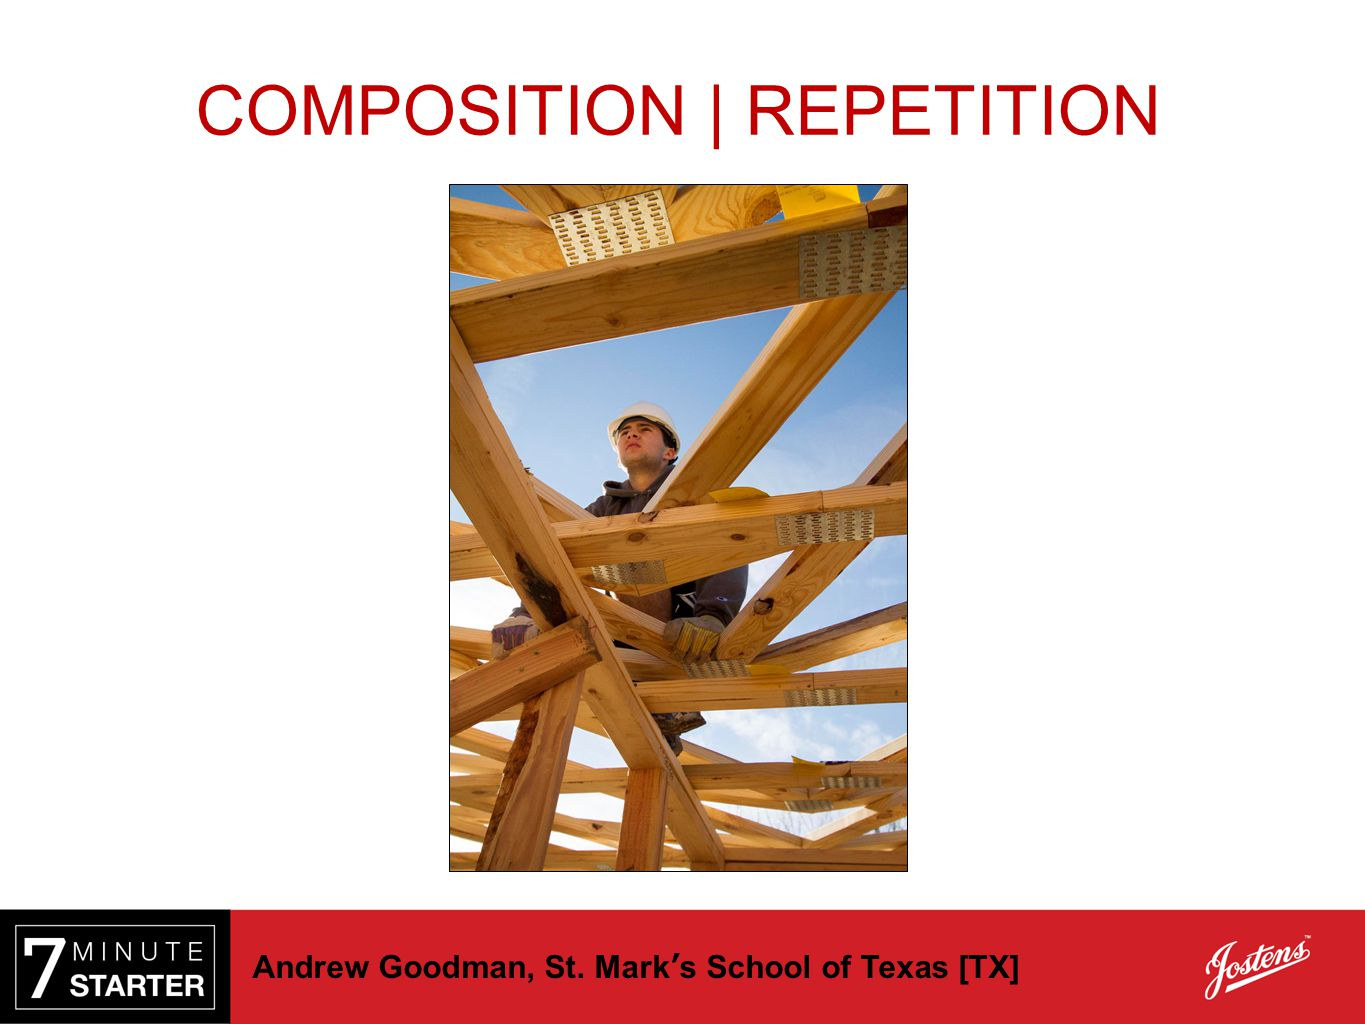 Andrew Goodman, St. Mark's School of Texas [TX] COMPOSITION | REPETITION